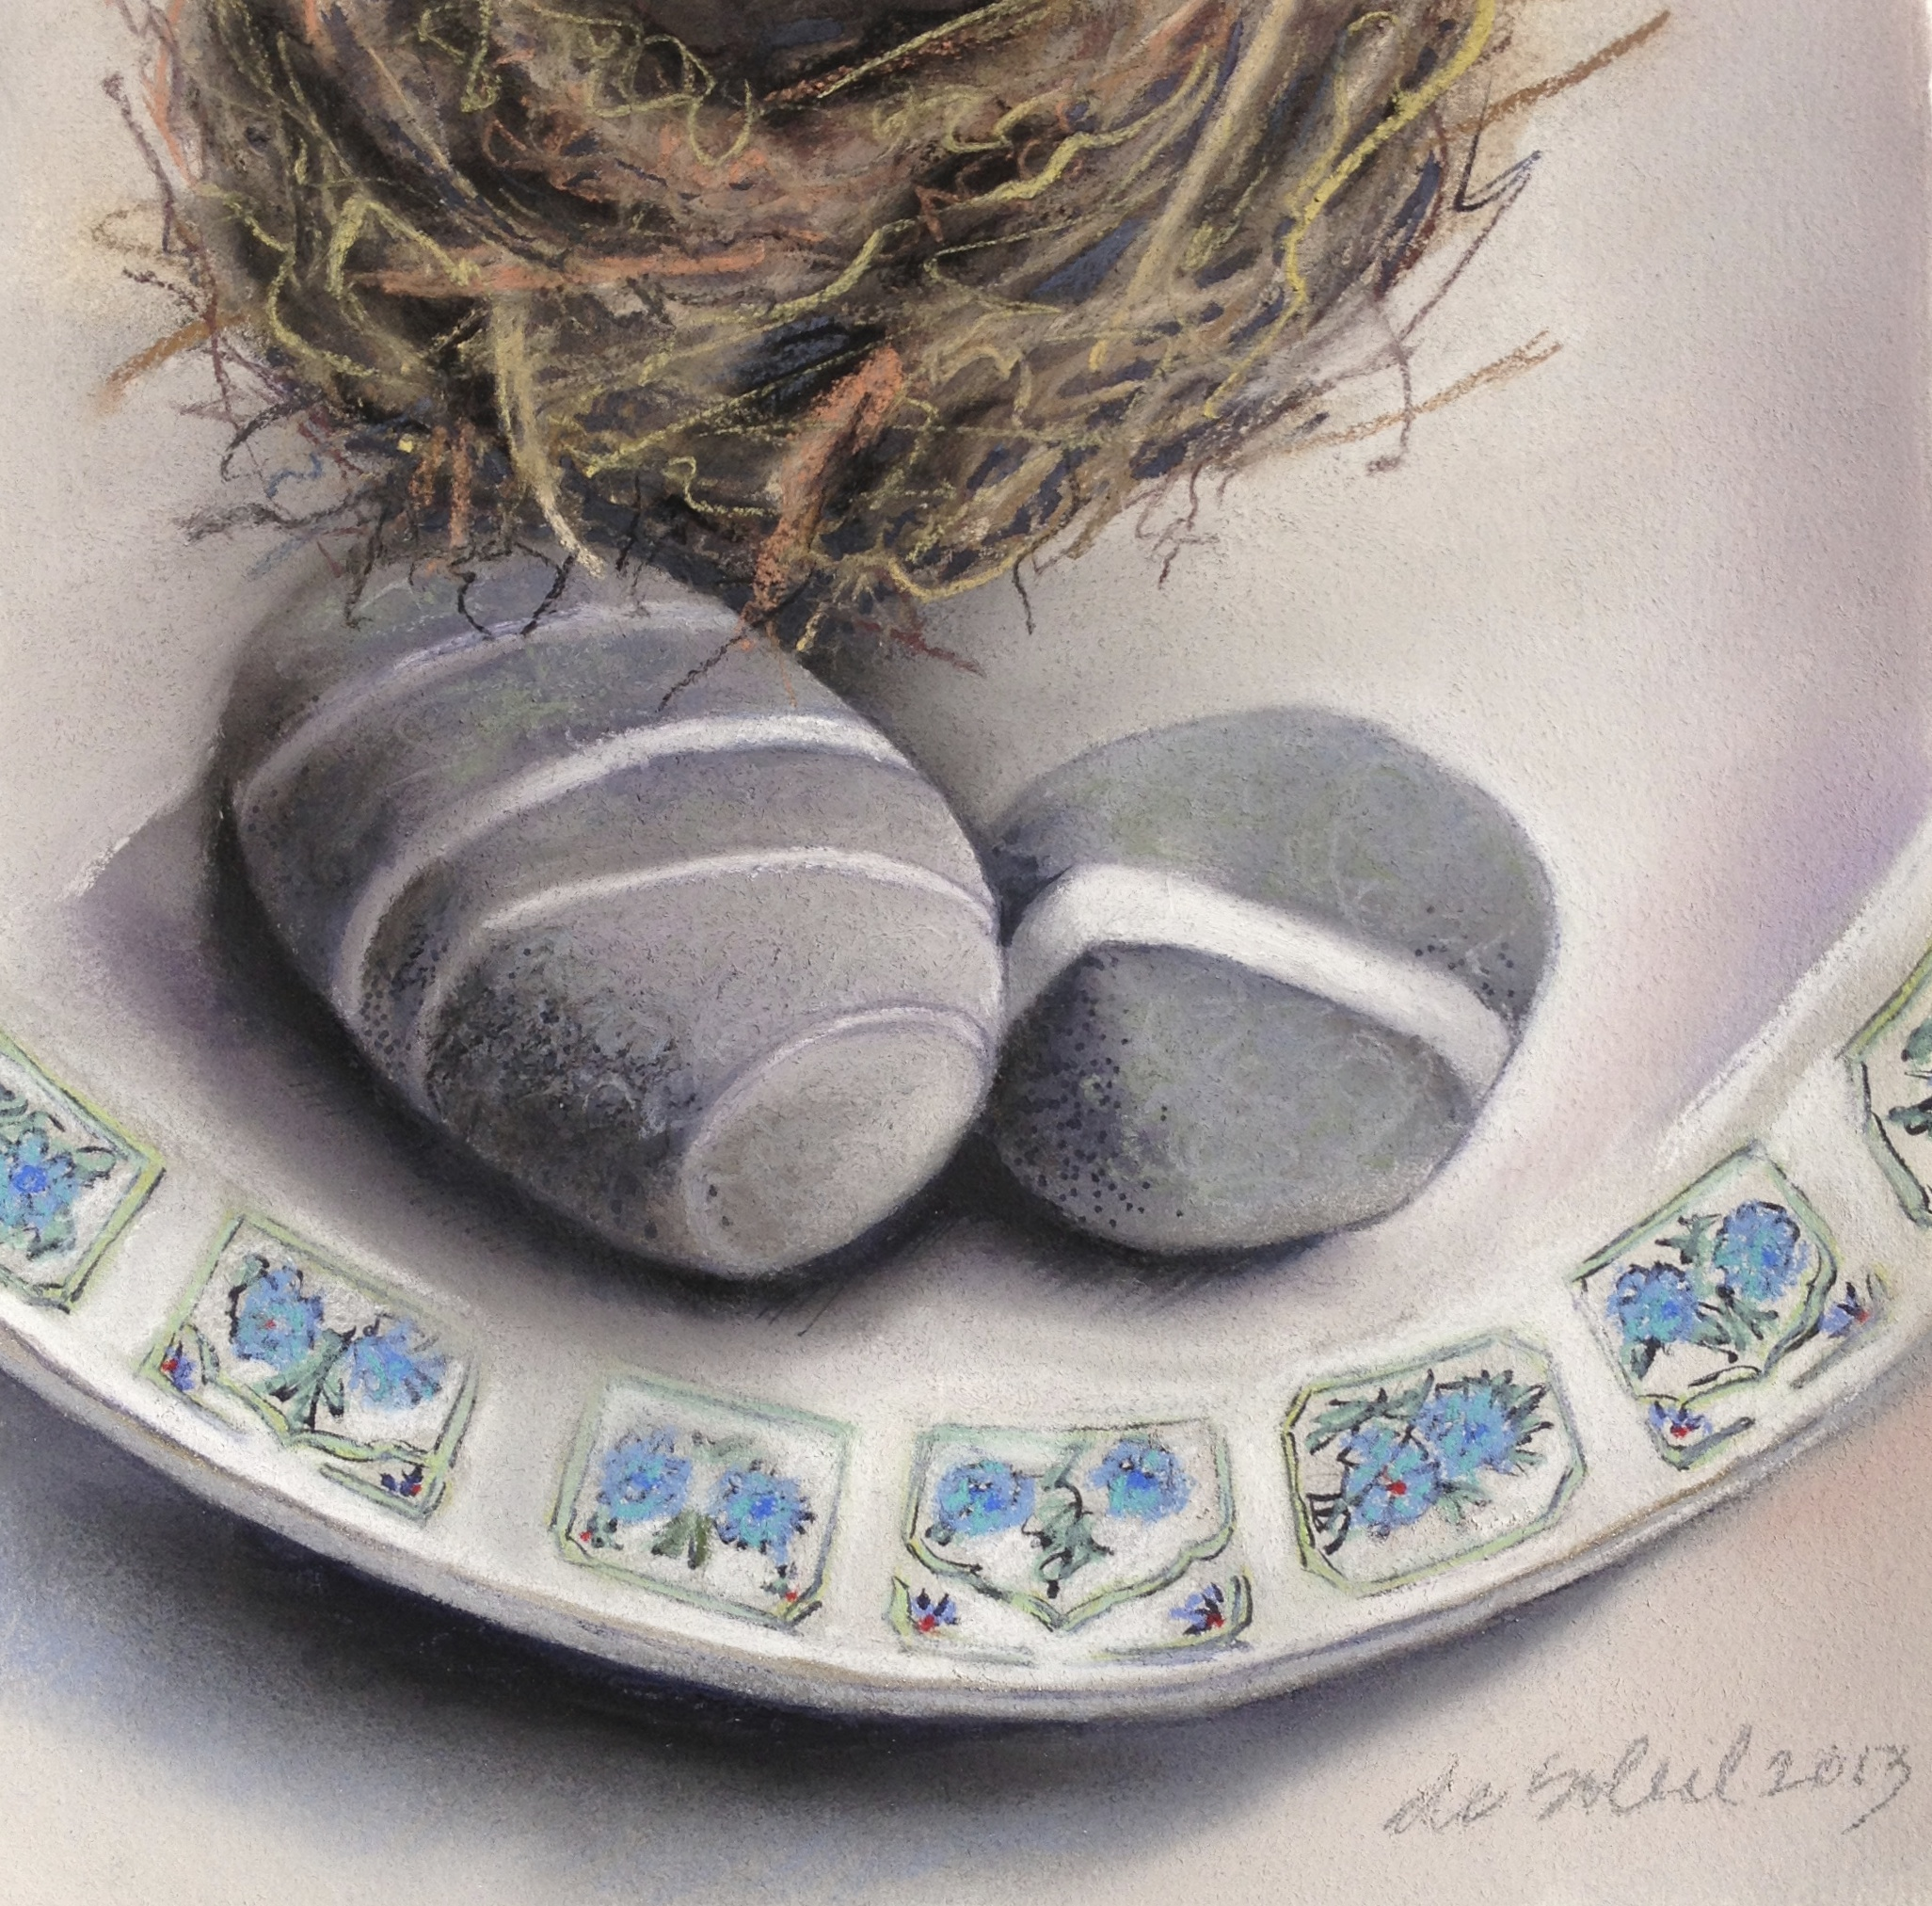 Margaret de Soleil, One Nest, Two Stones (Blue Plate), 2013